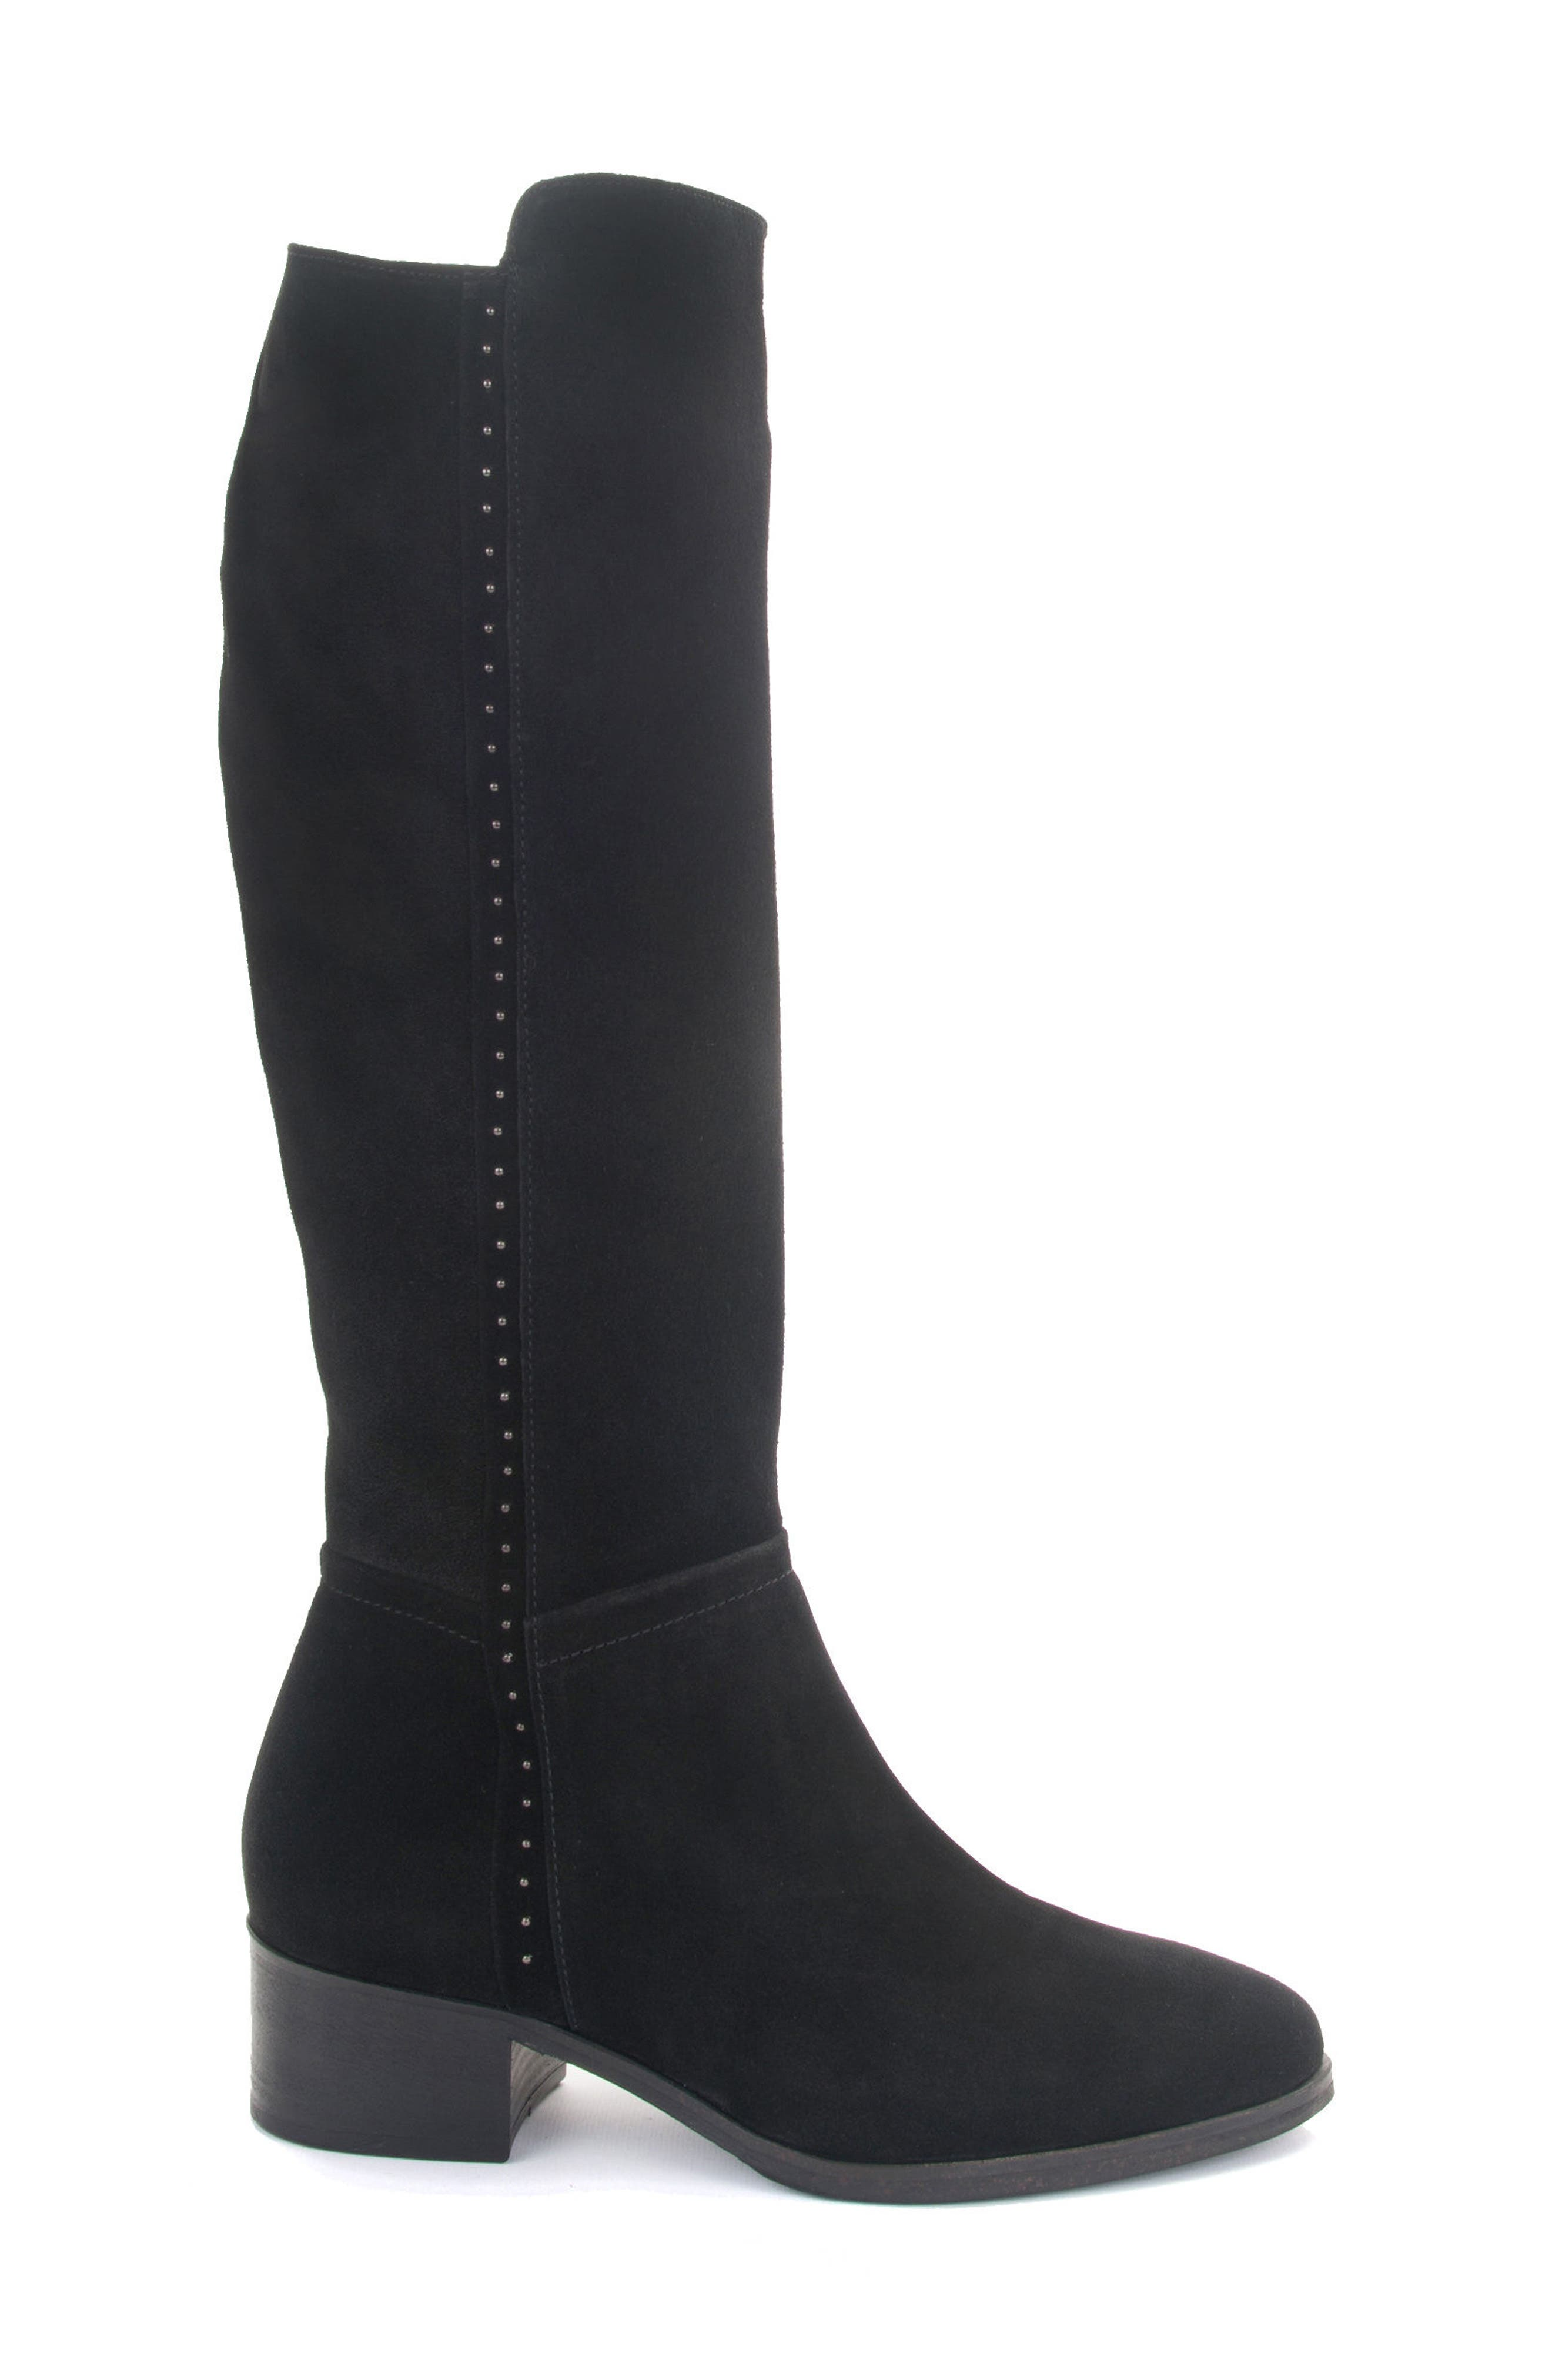 Fiamma Water Resistant Knee High Boot,                             Alternate thumbnail 3, color,                             010